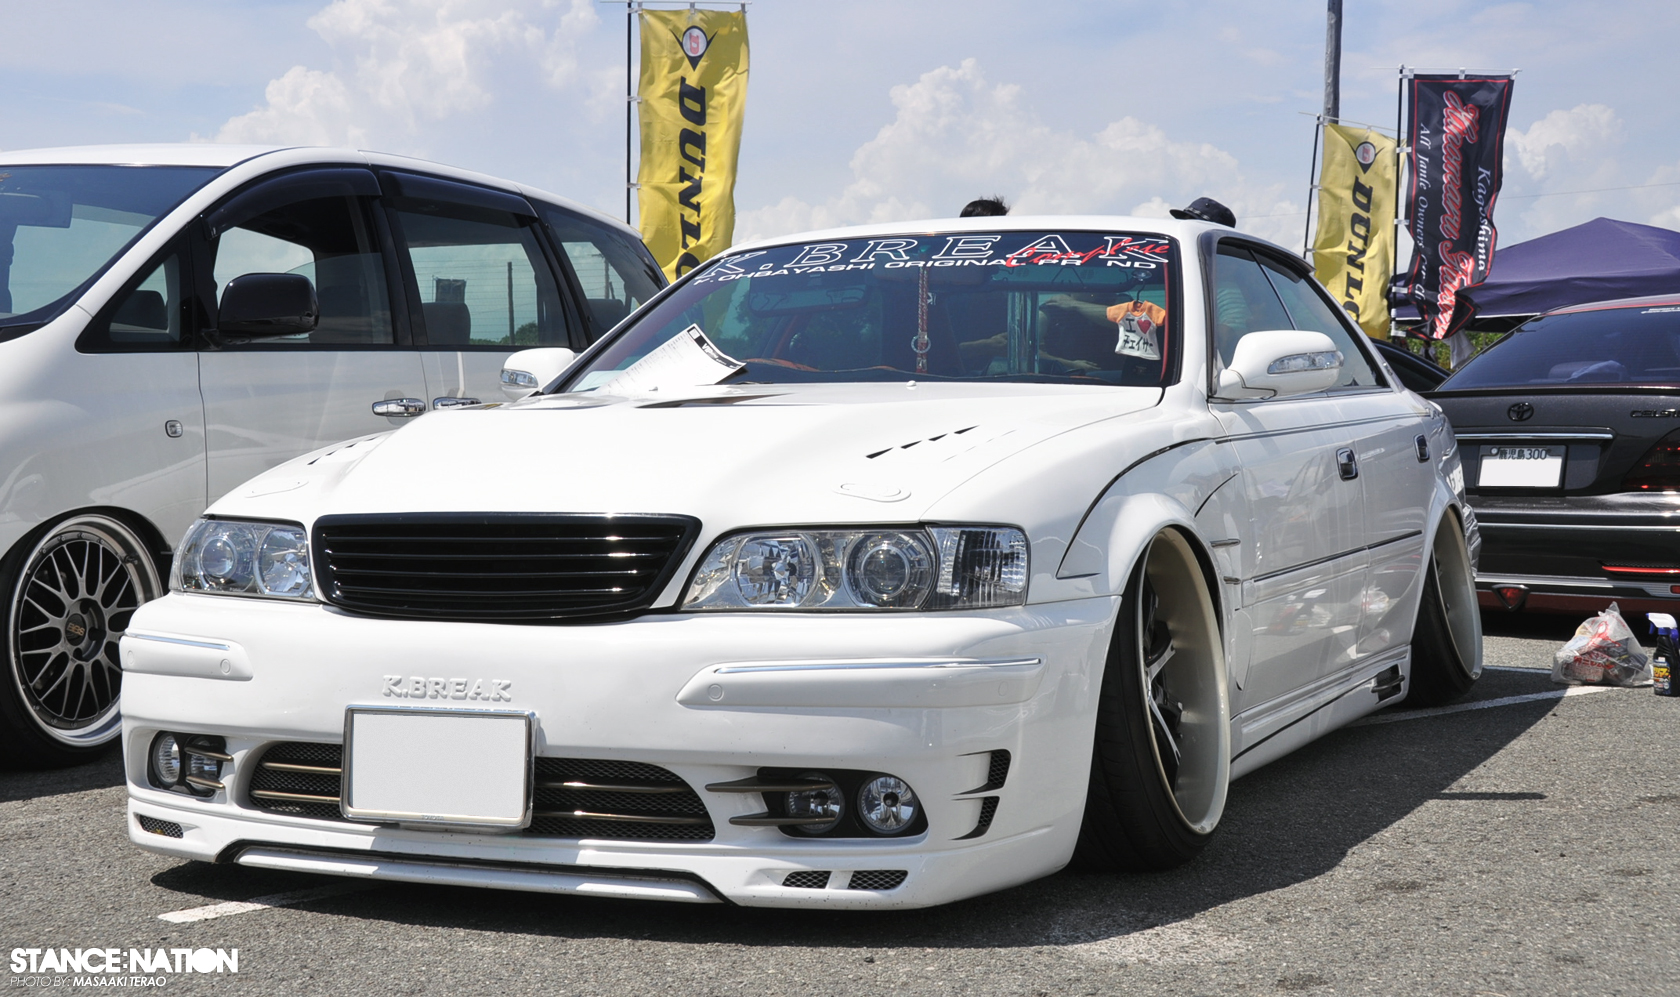 Fine Japanese Sedans Stancenation Form Function